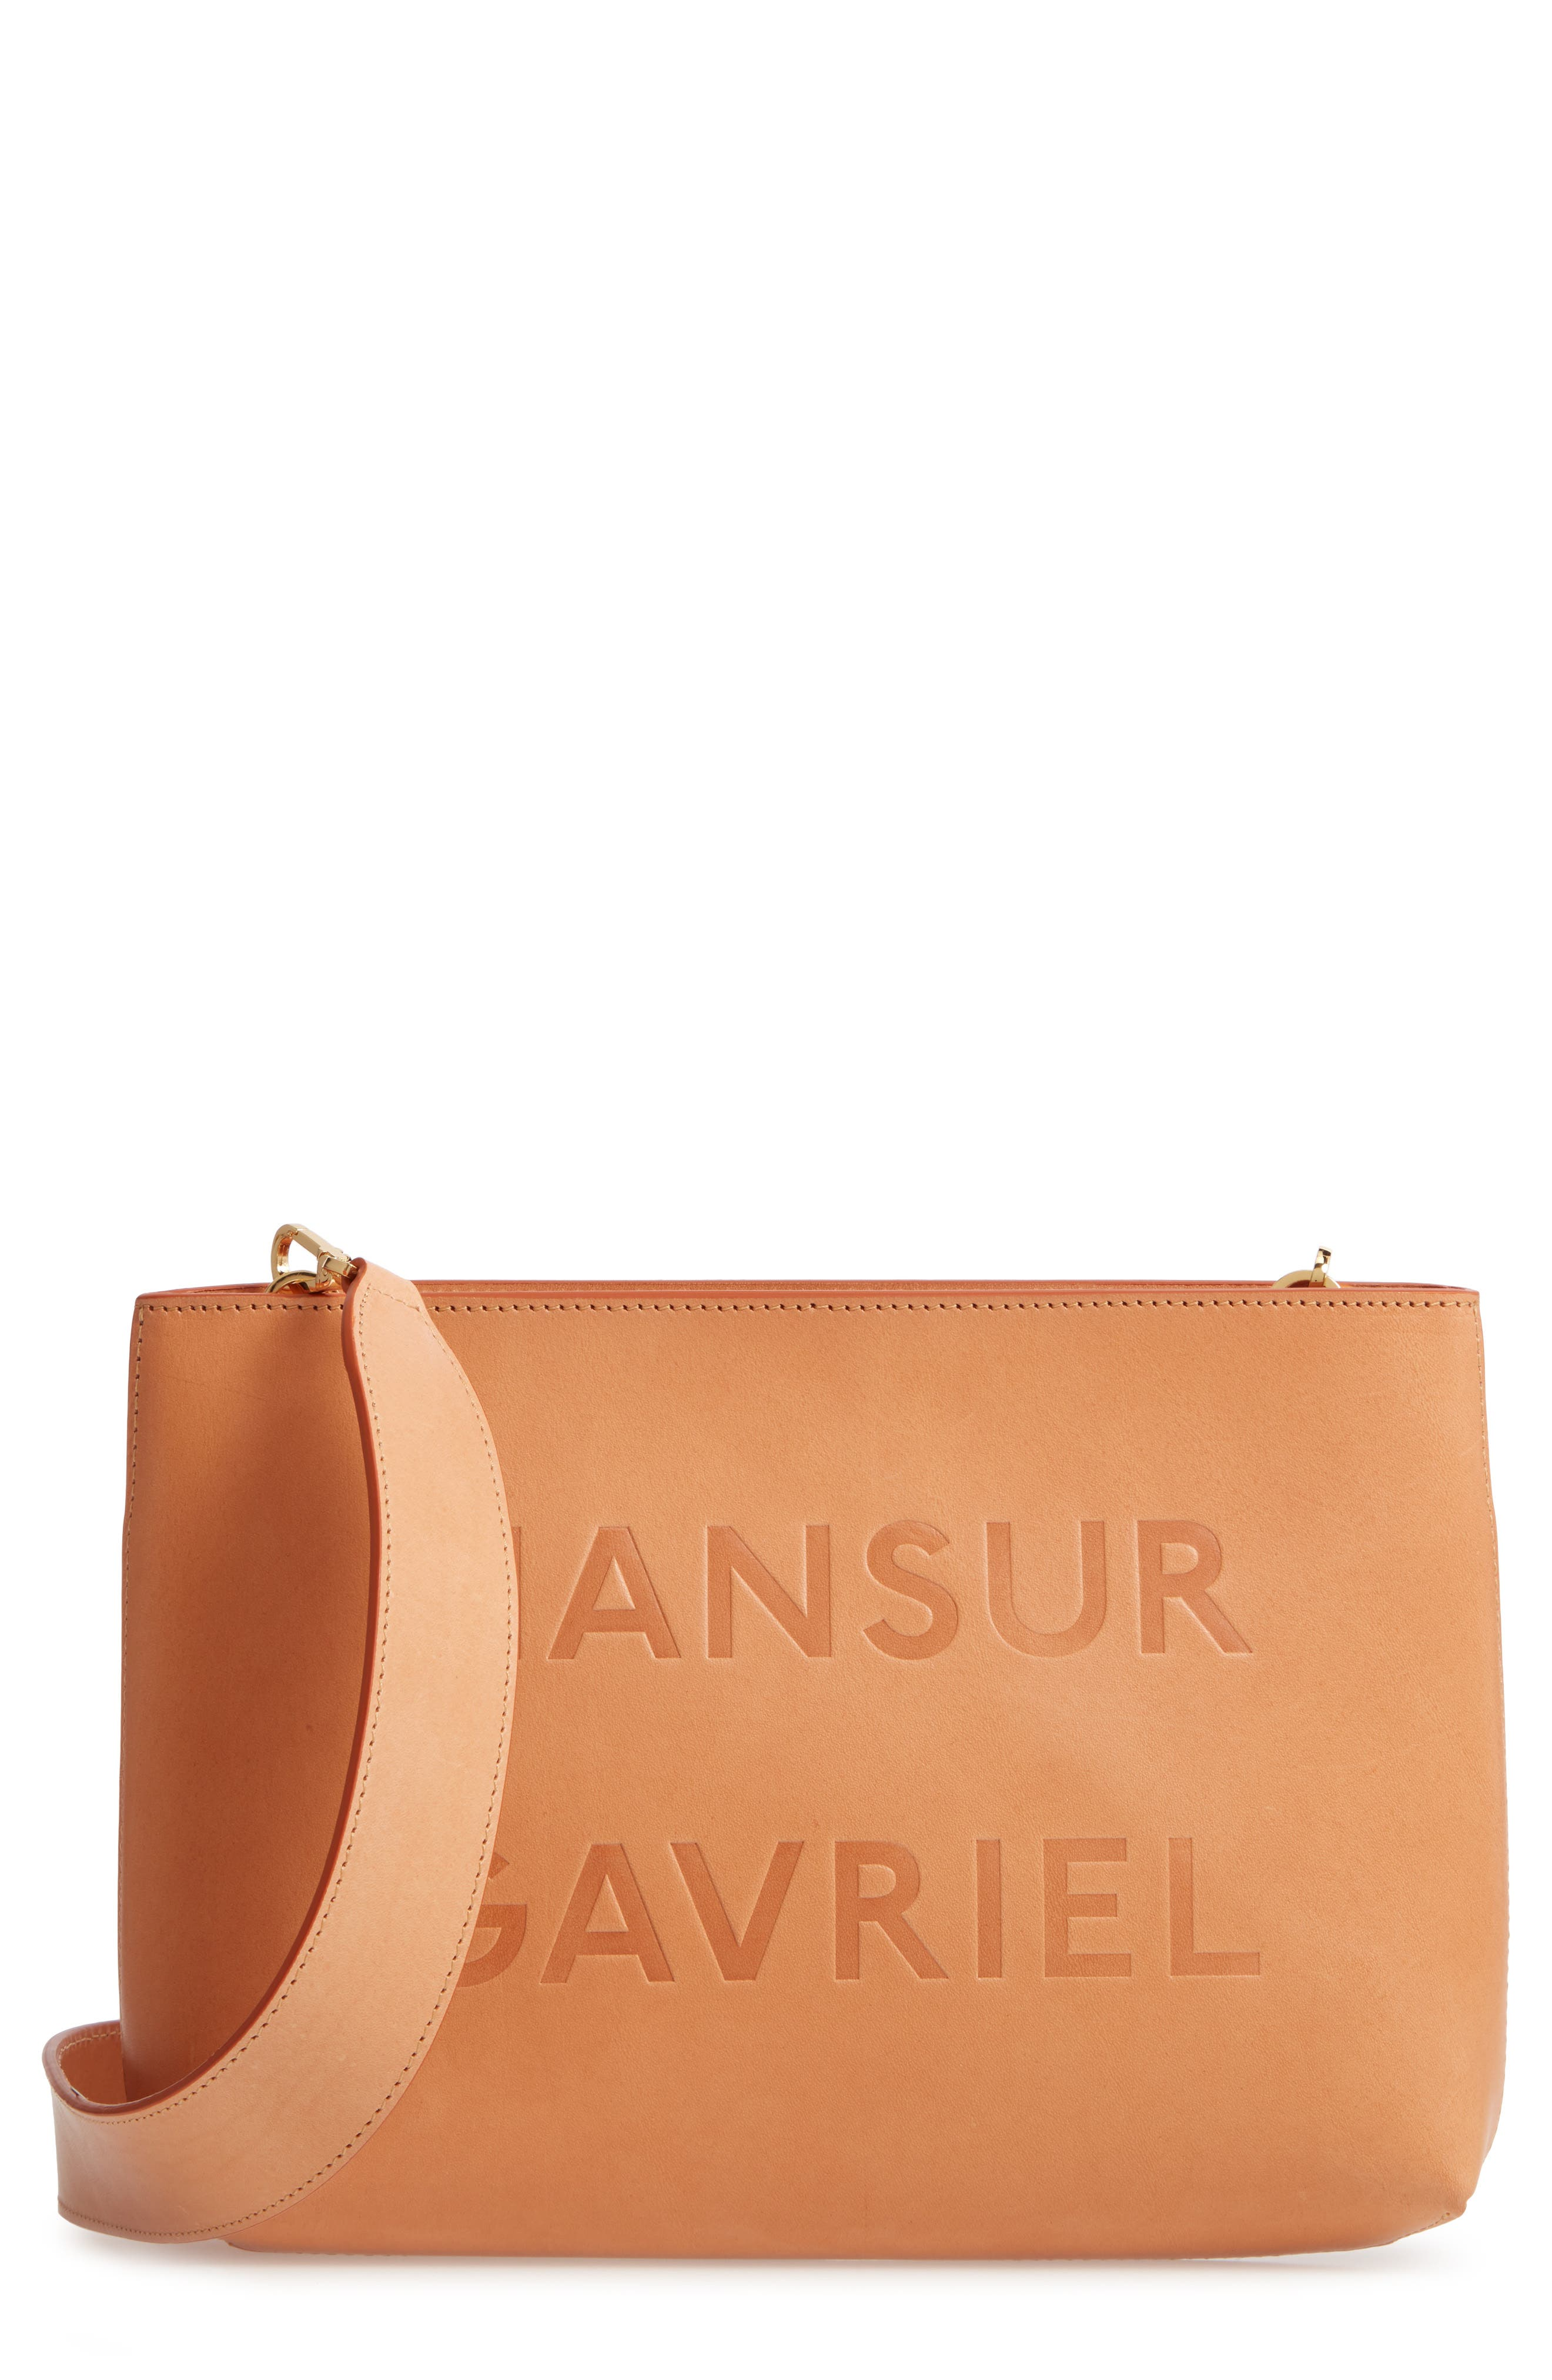 MANSUR GAVRIEL, Logo Leather Crossbody Bag, Main thumbnail 1, color, 250